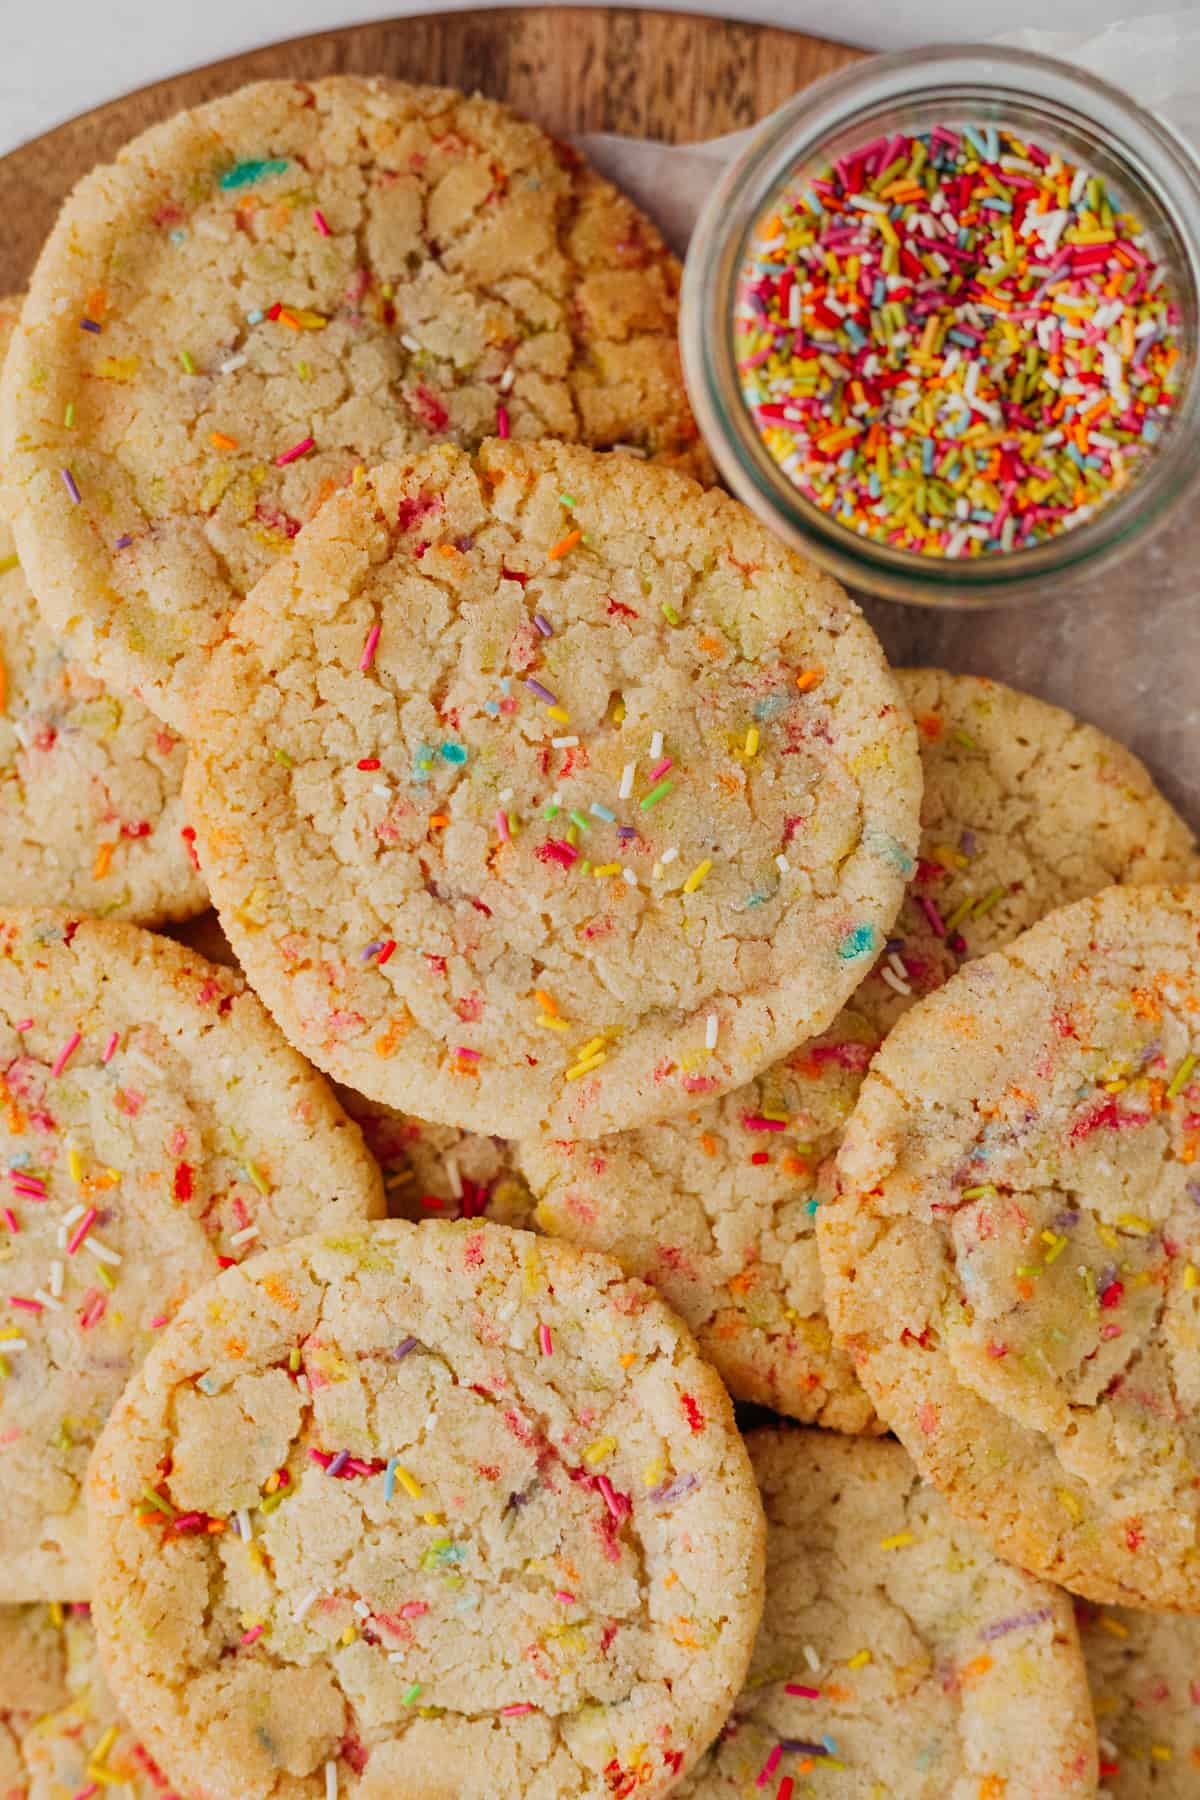 An overhead shot of sprinkle sugar cookies on a circular wooden board. There is a small glass jar full of sprinkles.